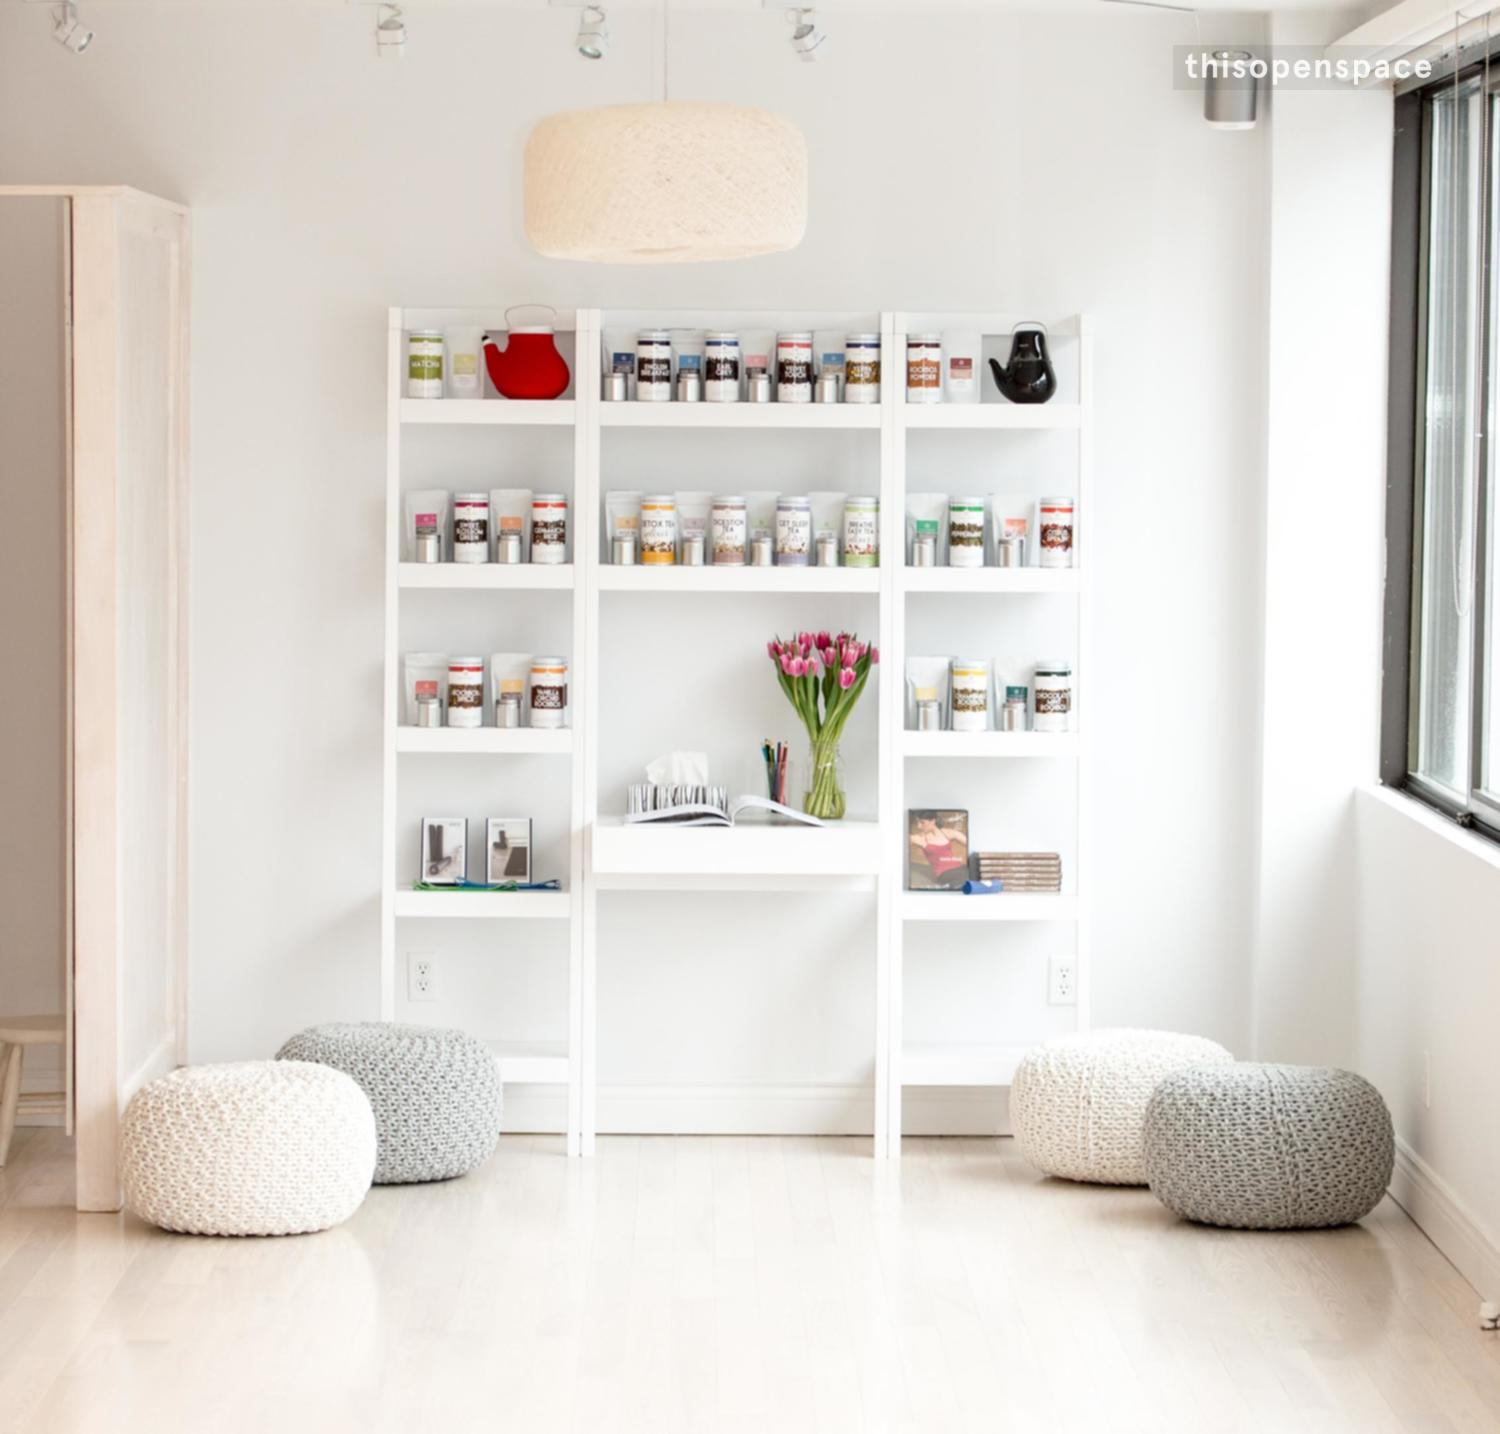 Bright Studio Space For Fitness Training